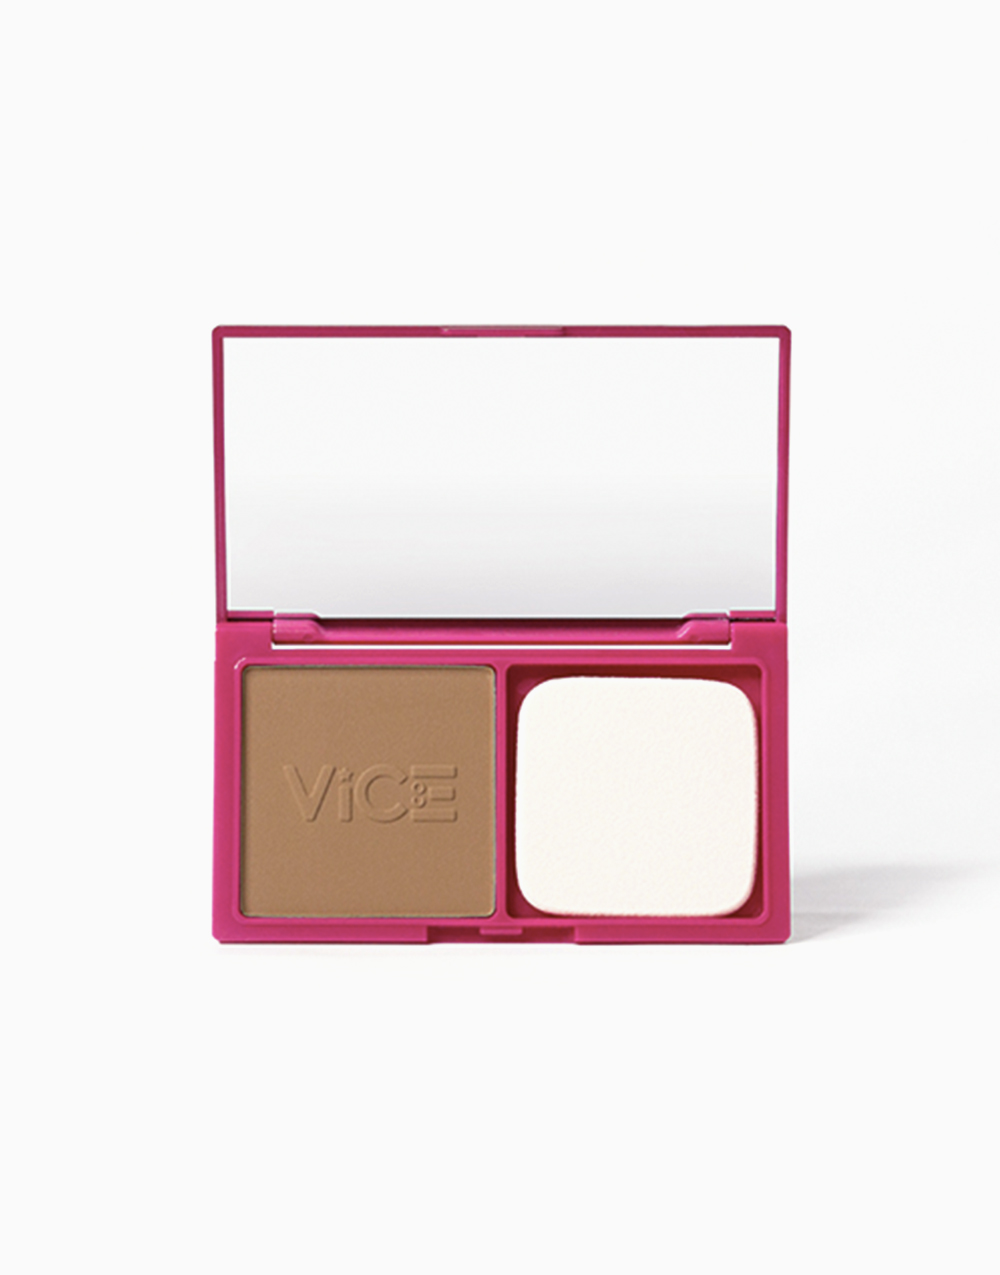 Duo Finish Foundation by Vice Cosmetics | MOREYNA